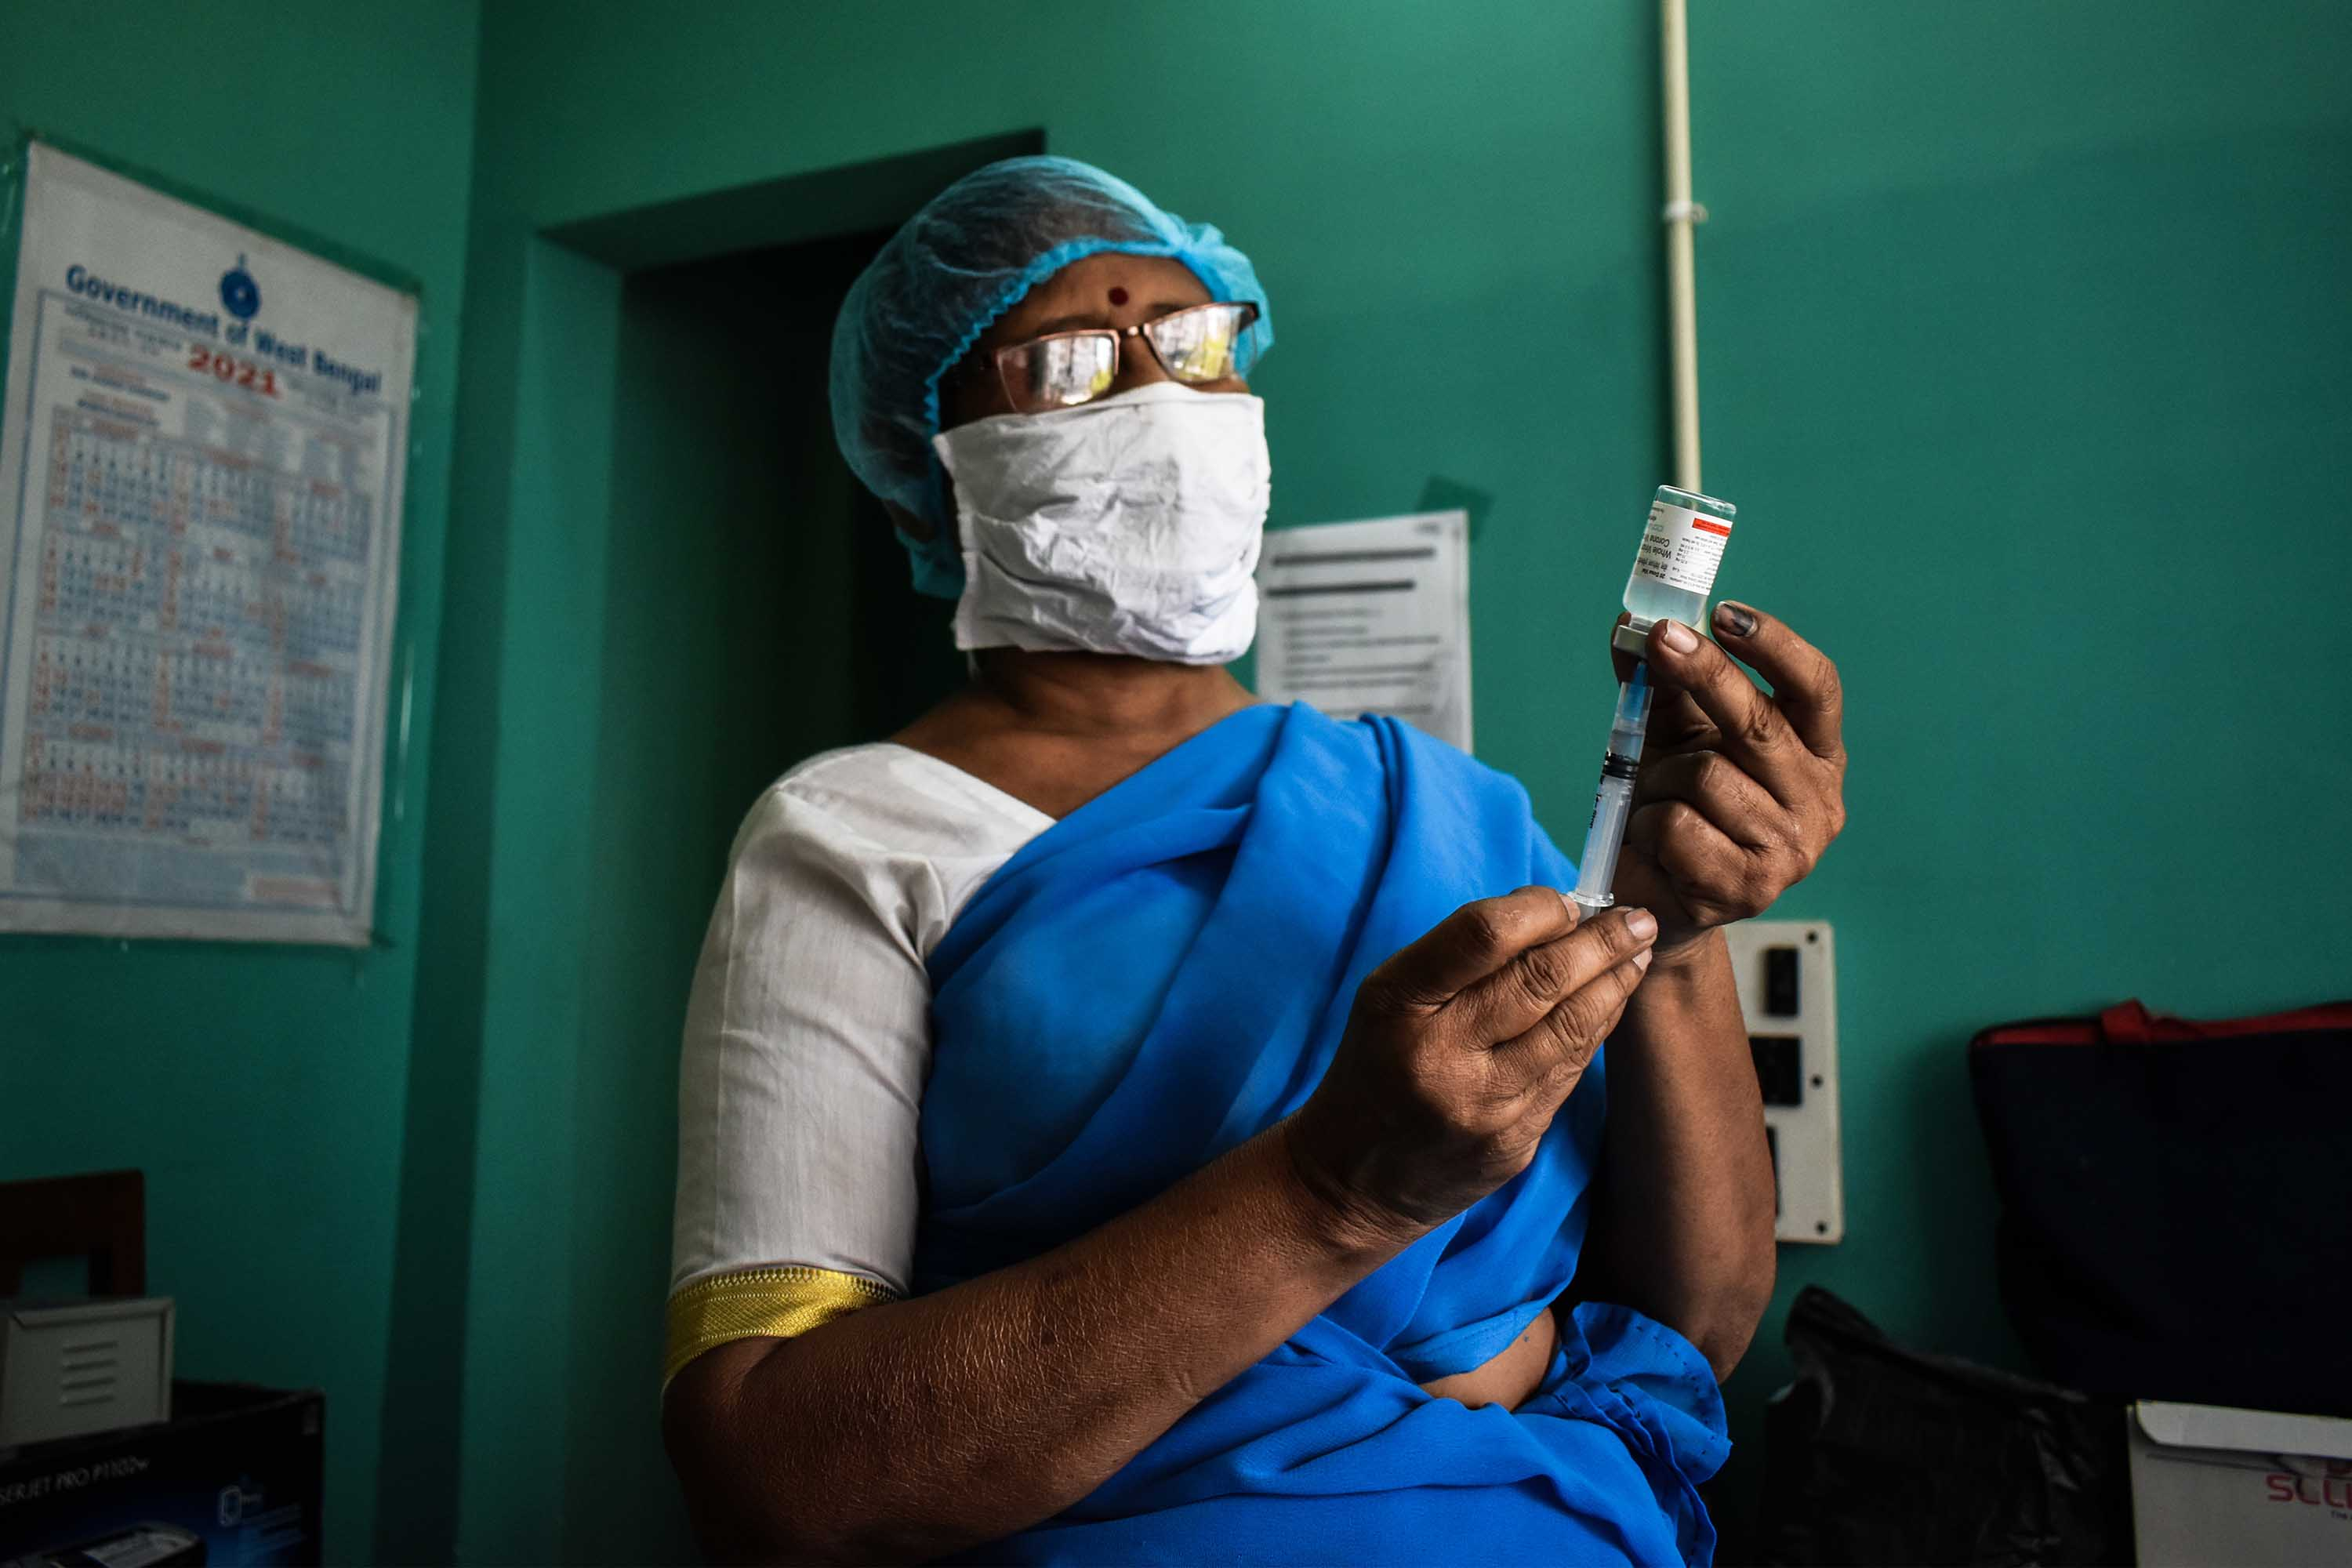 A health worker prepares a dose of the Covaxin vaccine at a vaccination center in Kolkata, India, on April 24.